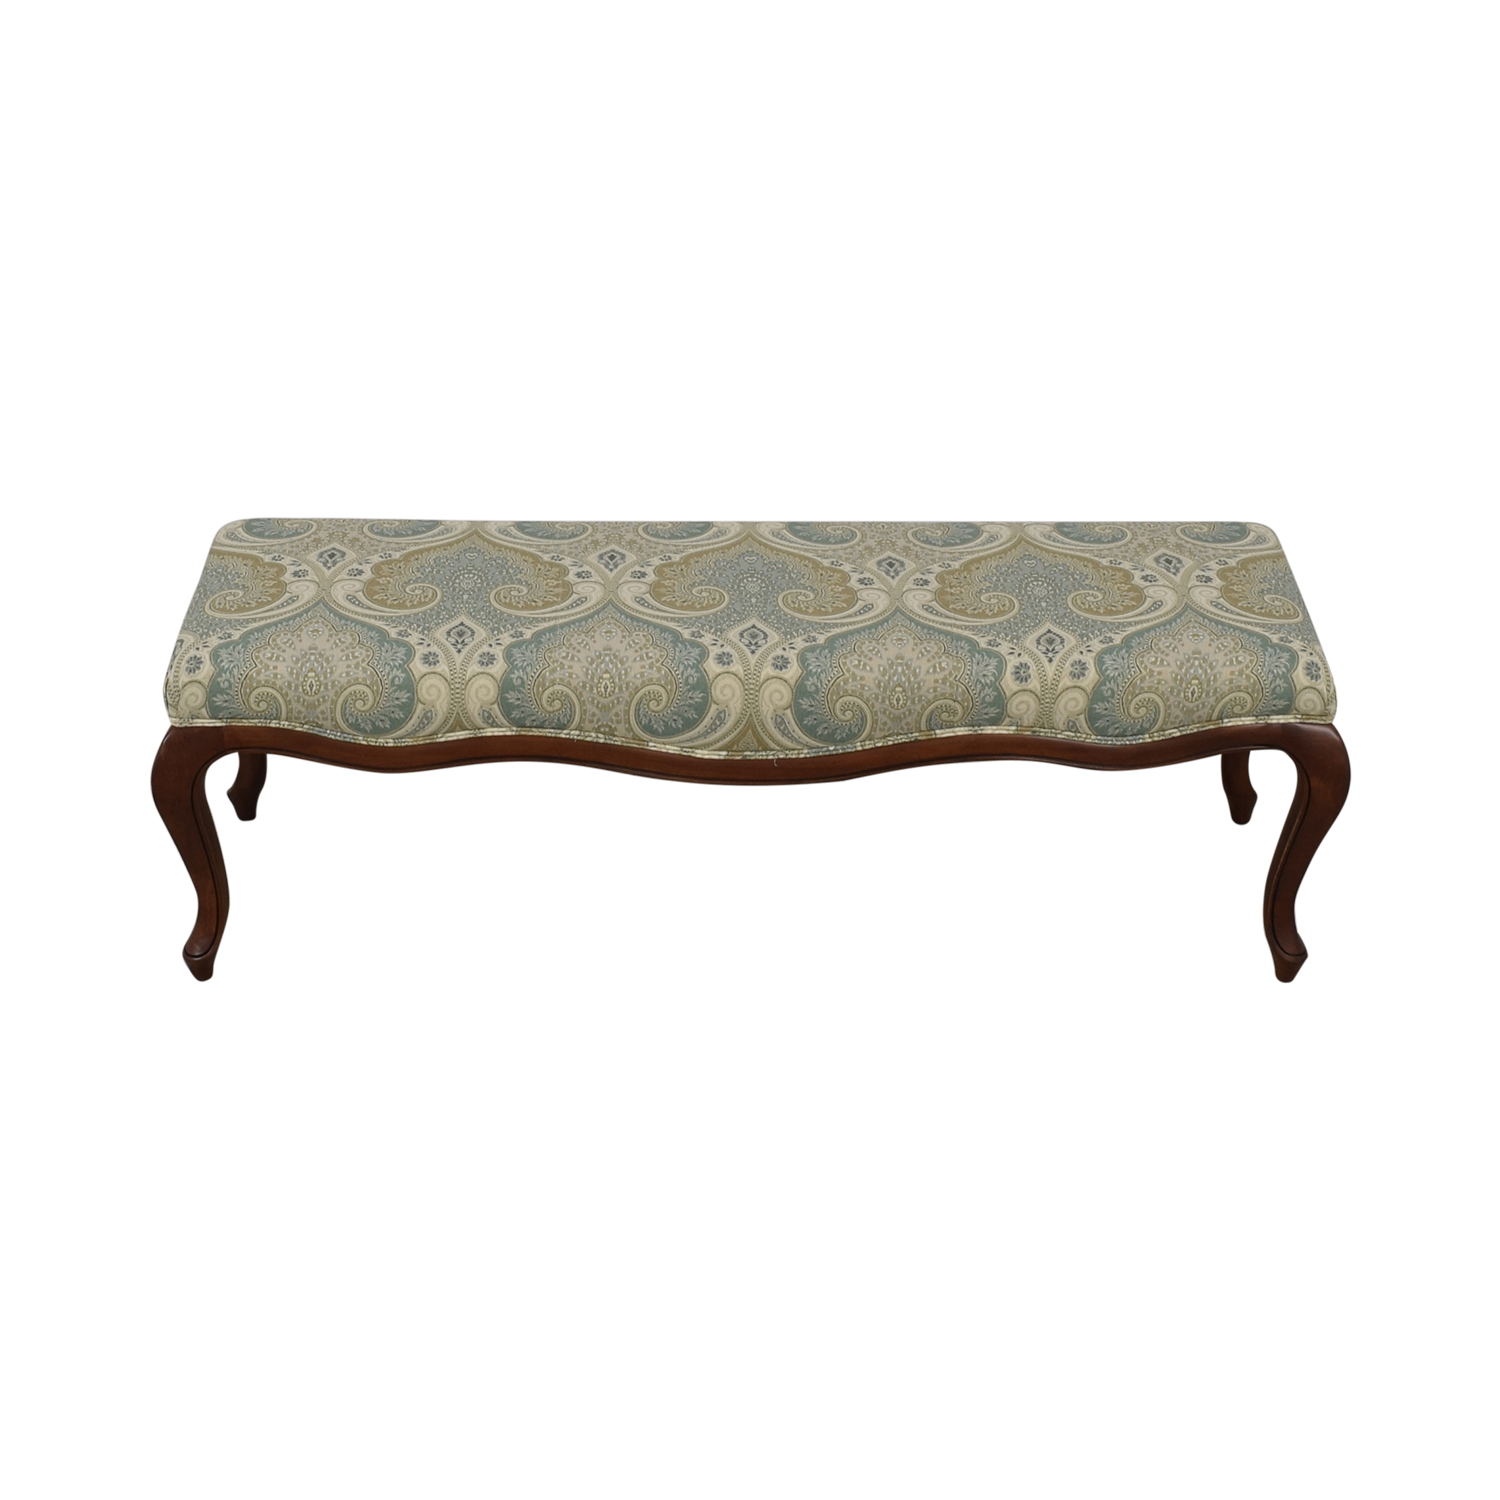 Ethan Allen Ethan Allen Blue Paisley Bench for sale